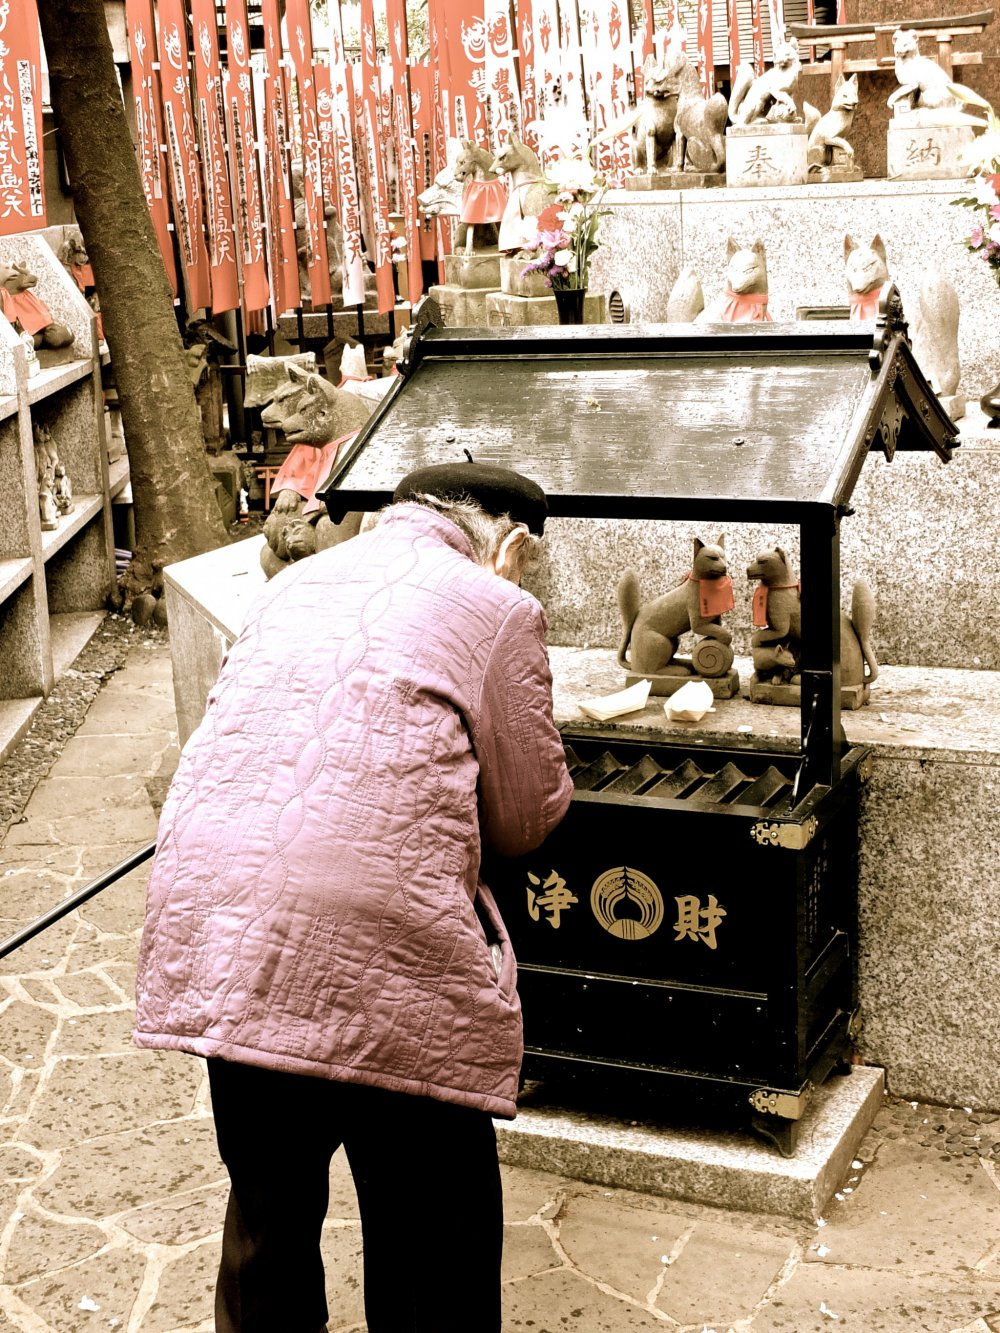 This elderly woman had a plastic bag full of small coins; she went from prayer station to prayer station, made an offering and prayed, then went to the next one